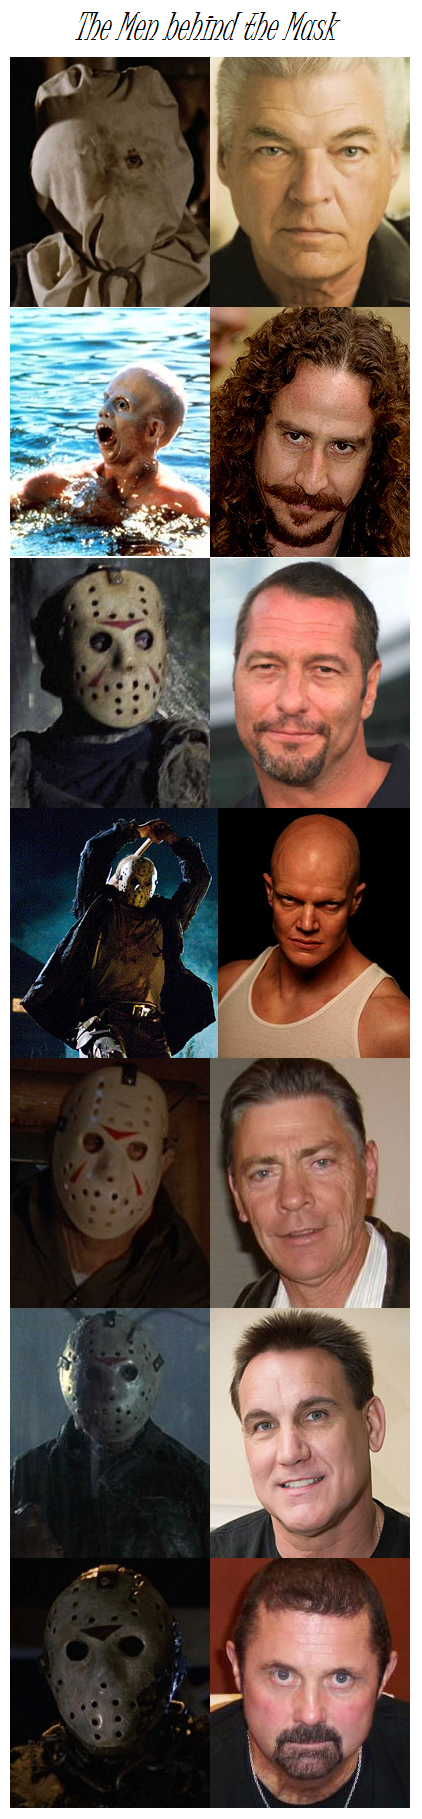 the_man_behind_the_mask___jason_voorhees